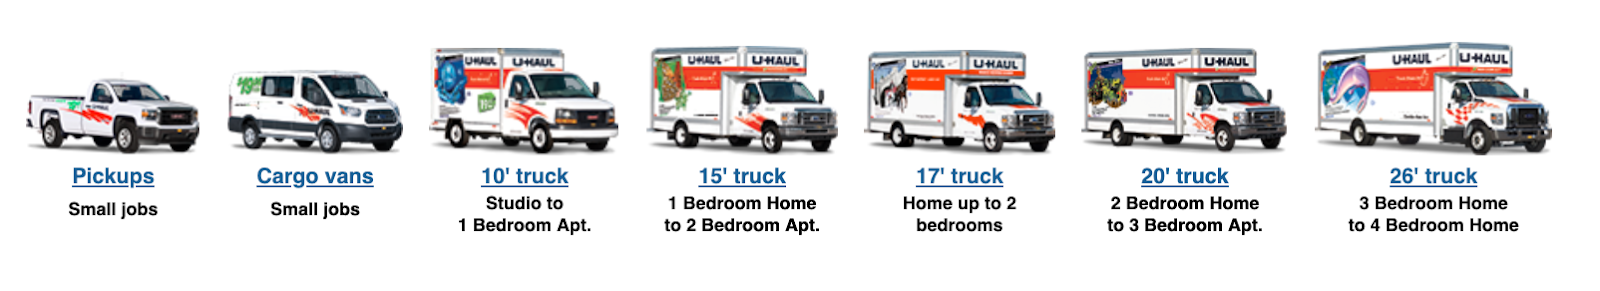 How Much Does a U-Haul Cost?